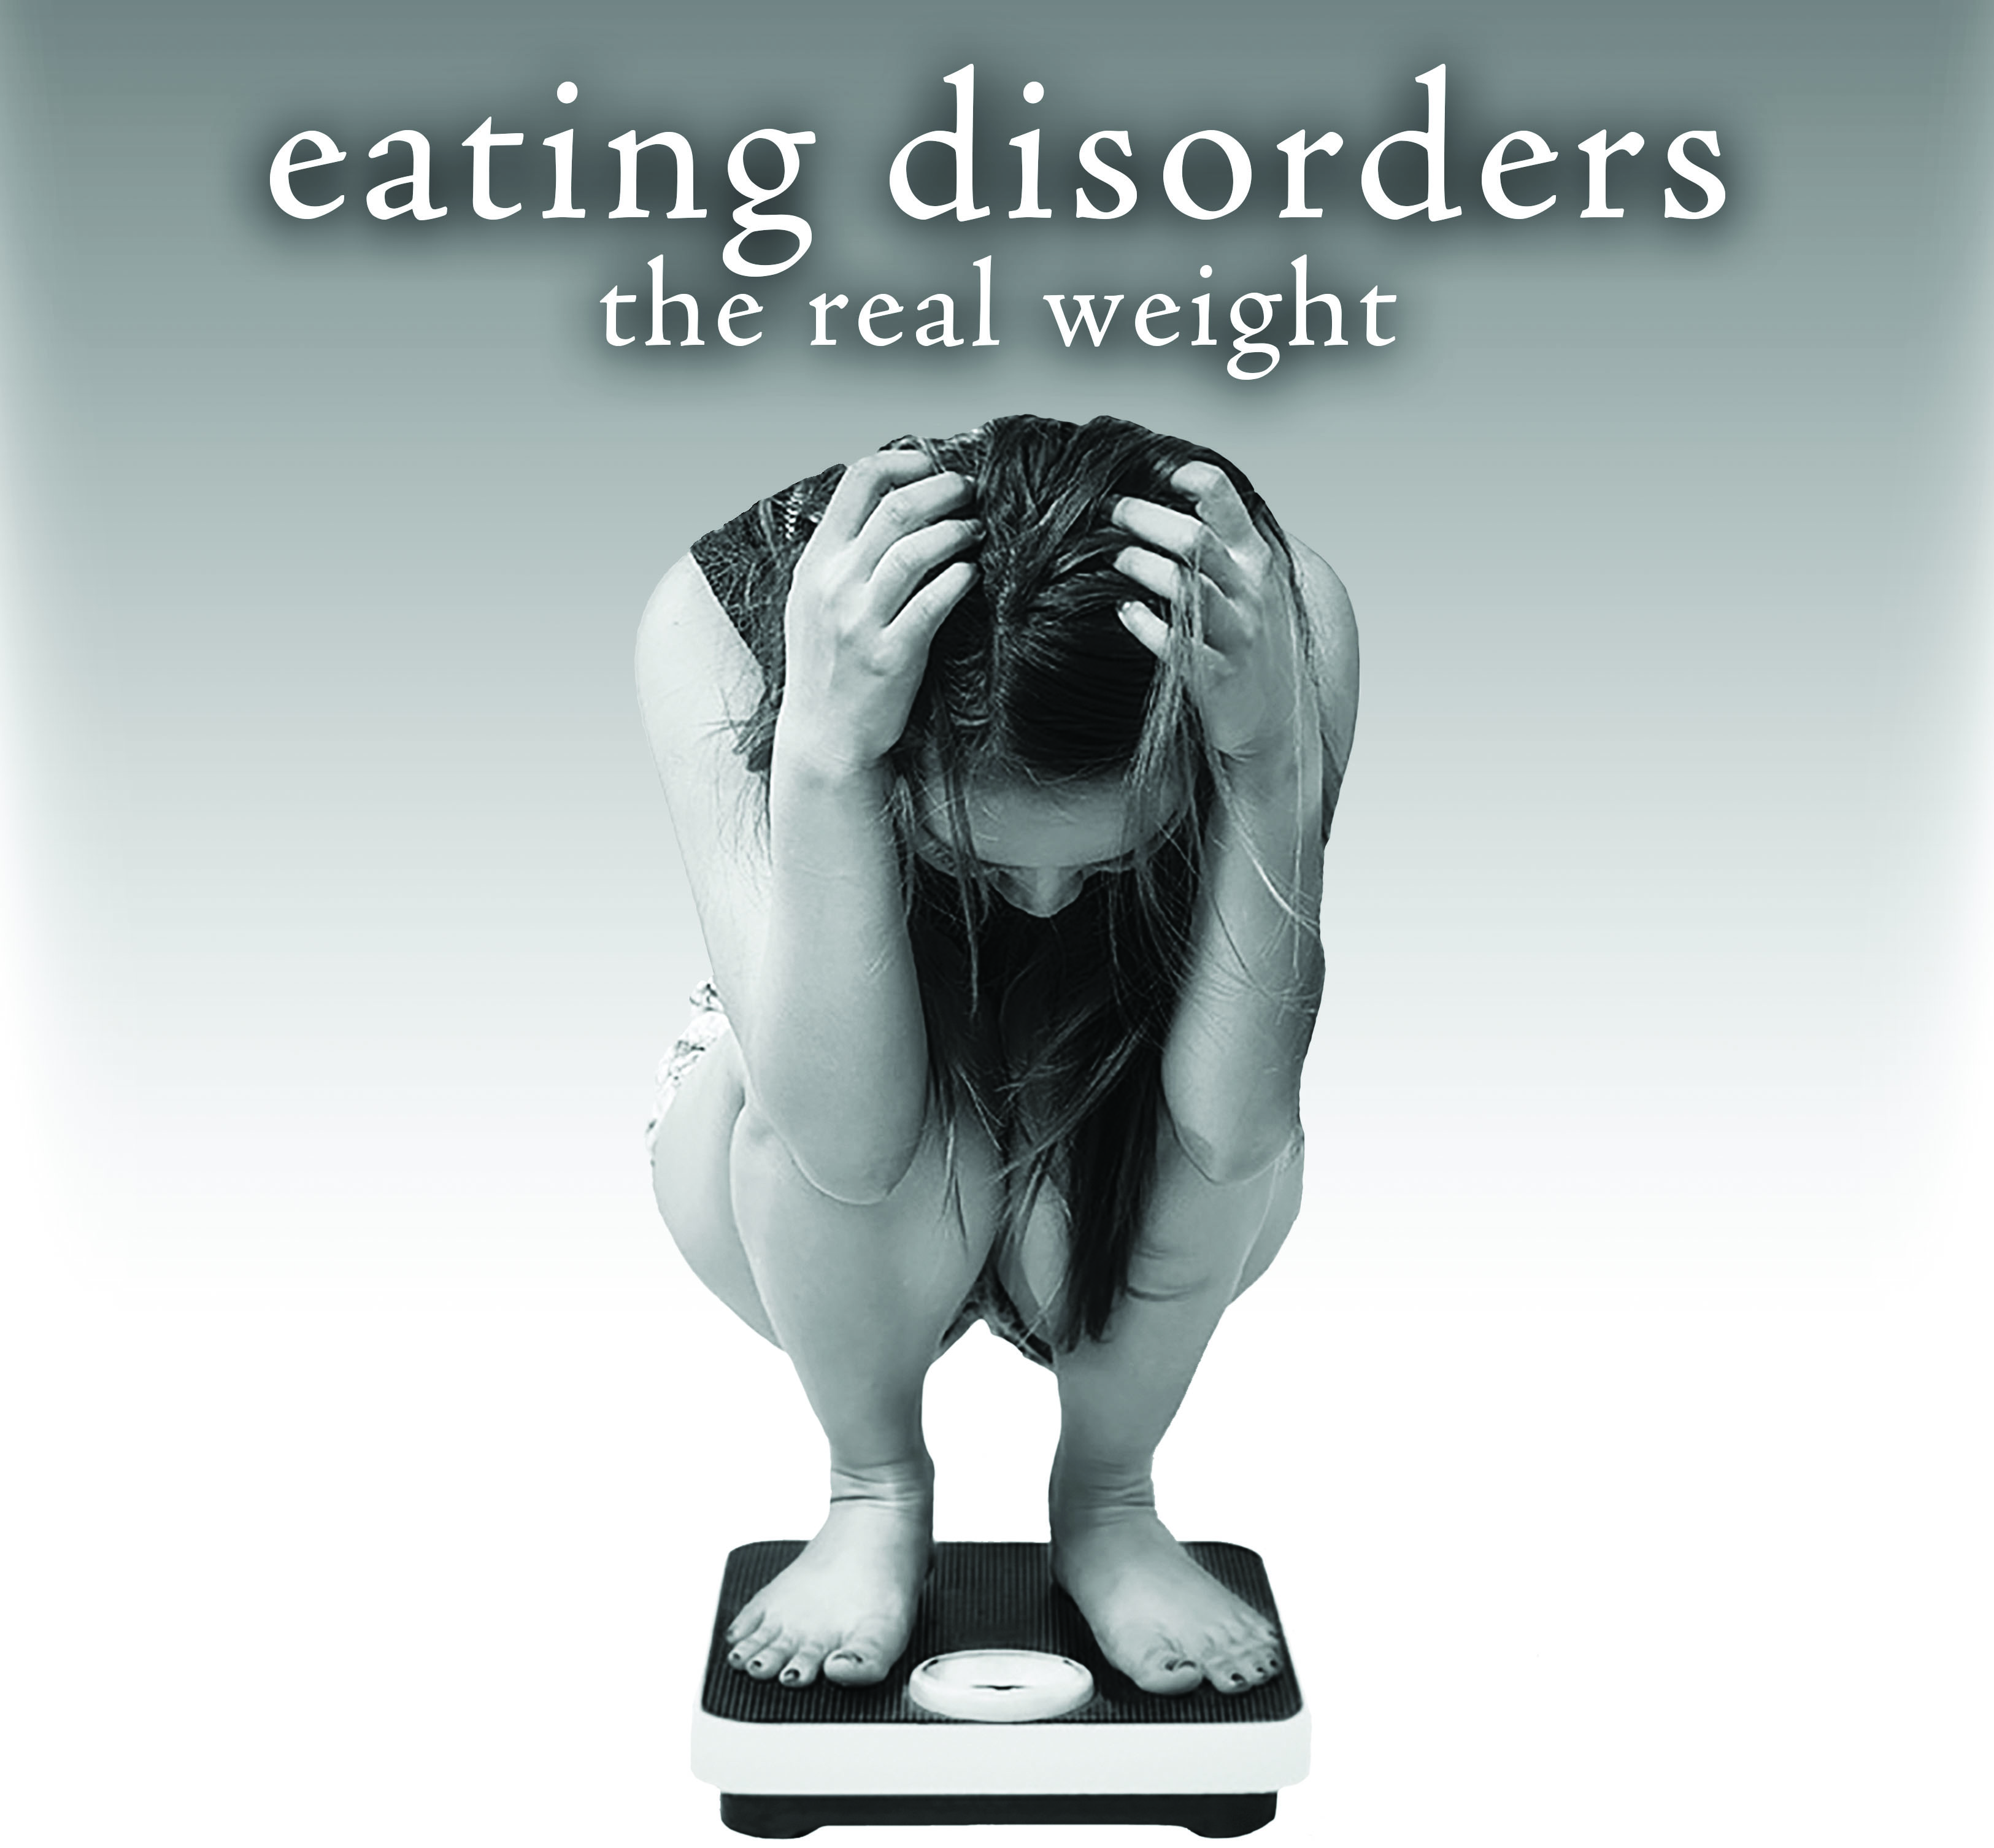 The Real Weight Of Eating Disorders